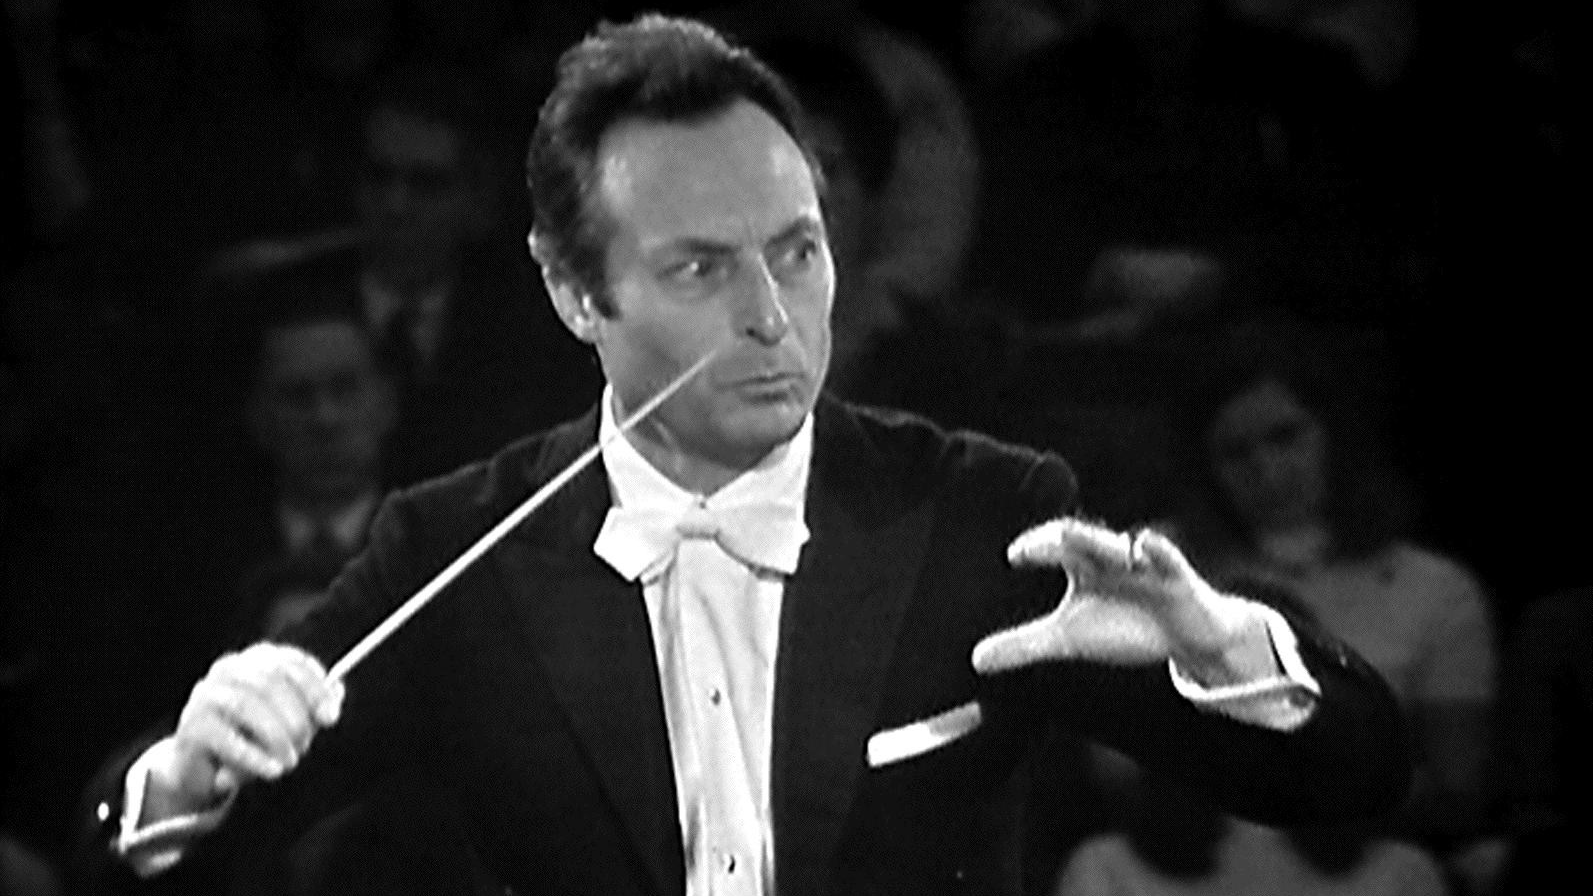 Carlo-Maria Giulini conducts Verdi and Constantin Silvestri conducts Beethoven